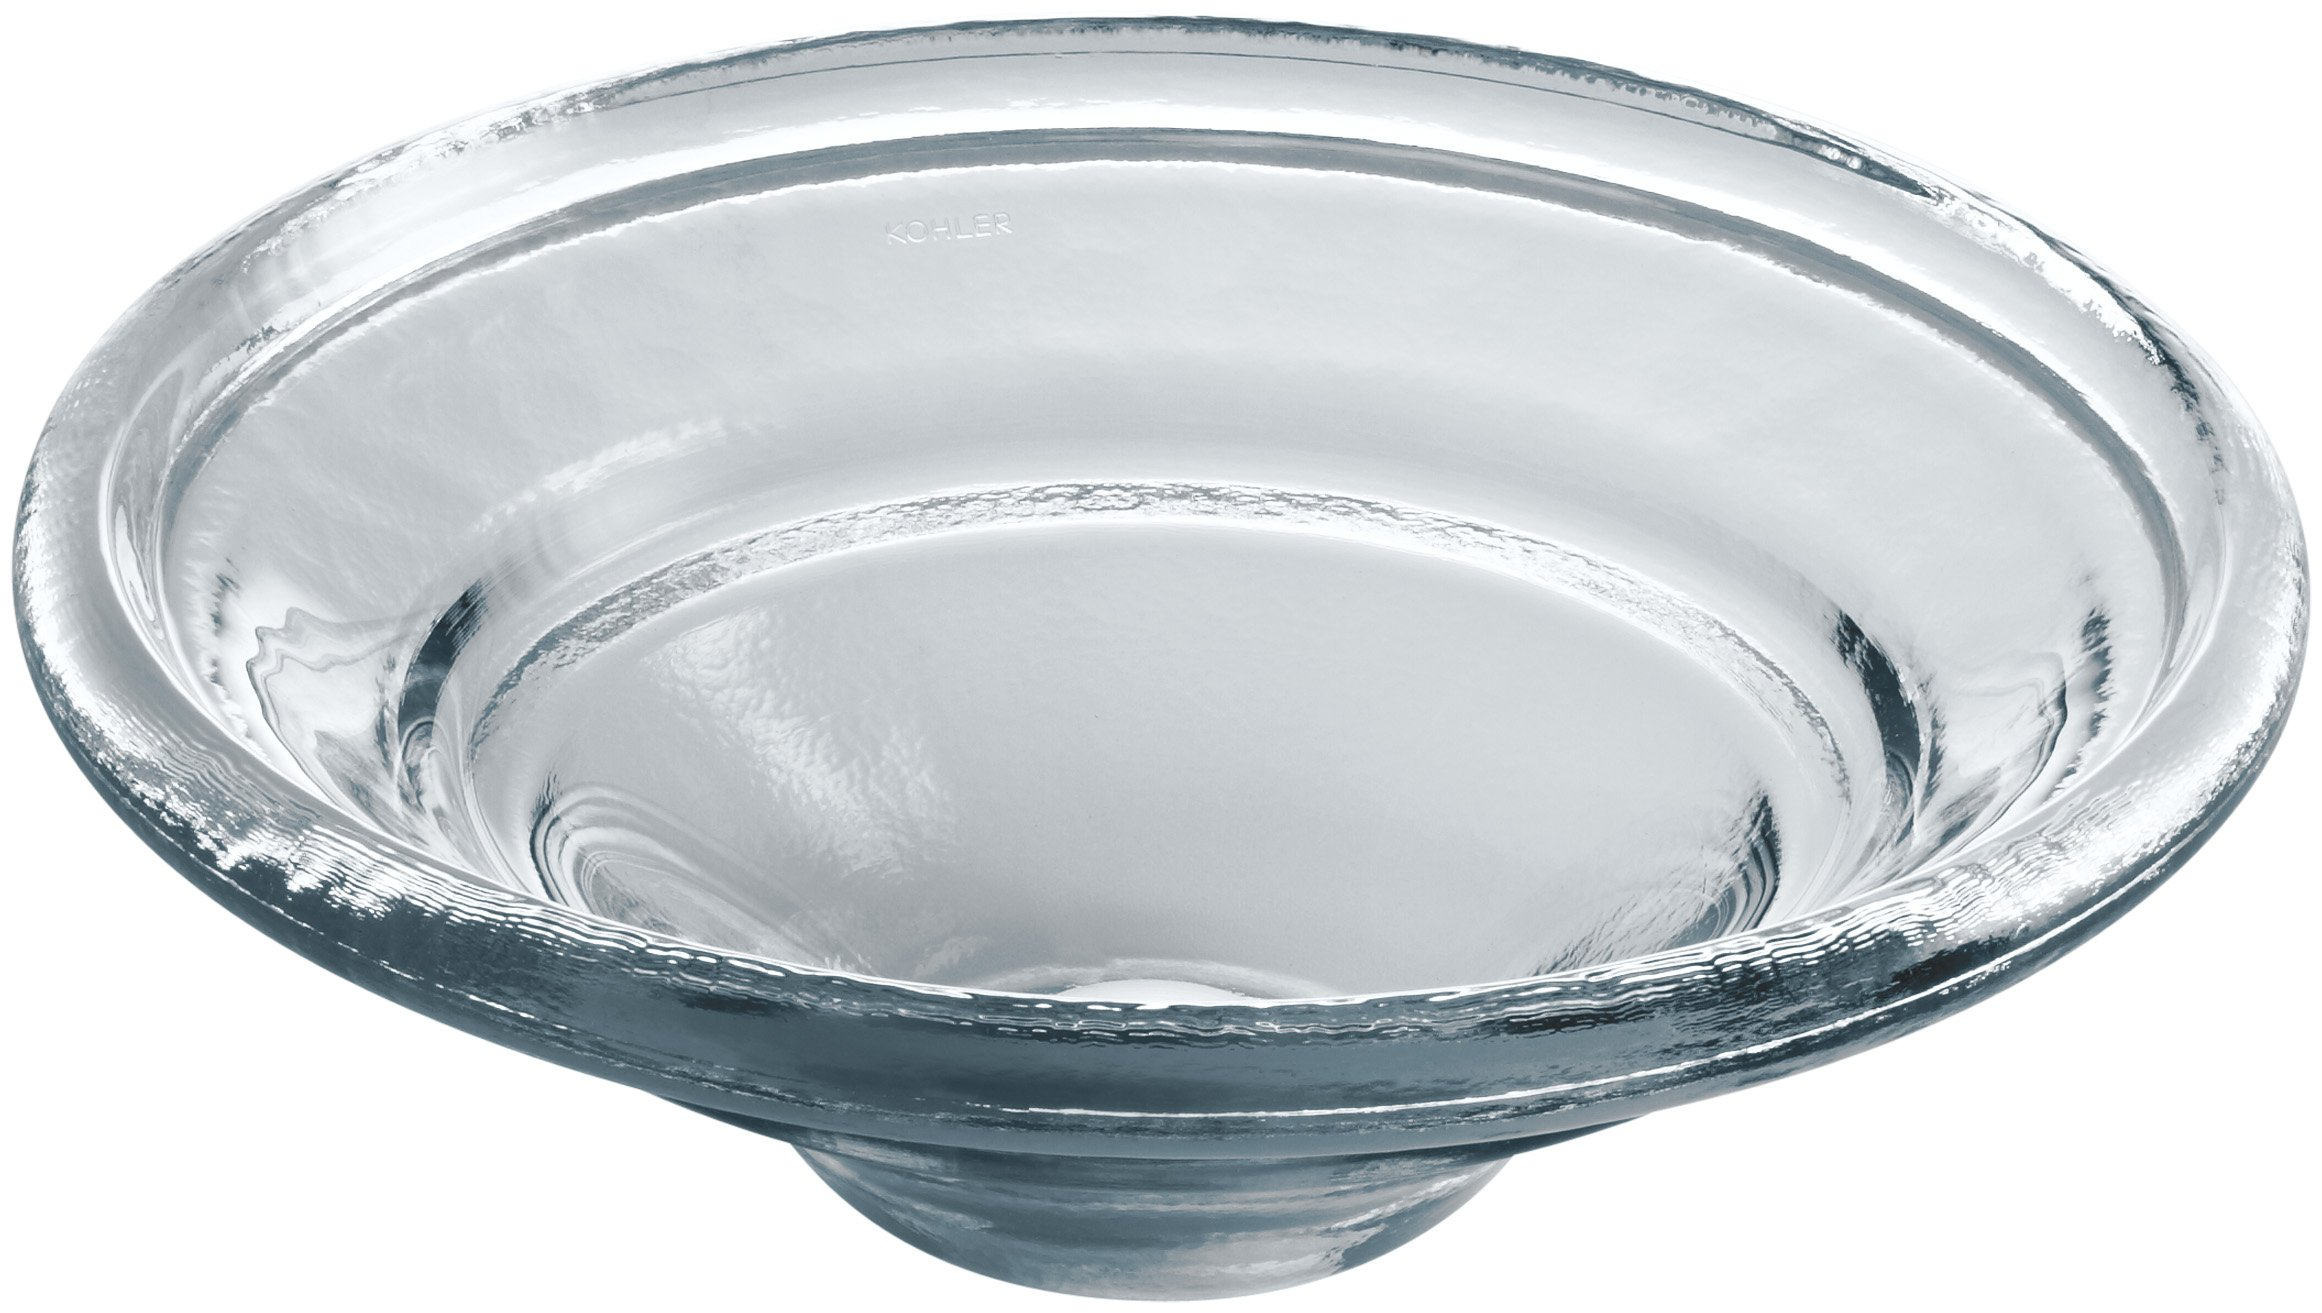 KOHLER K-2276-TG1 Spun Glass Vessel Drop-In, Above-Counter or Wall-Mount Bathroom Sink, Translucent Dusk by Kohler